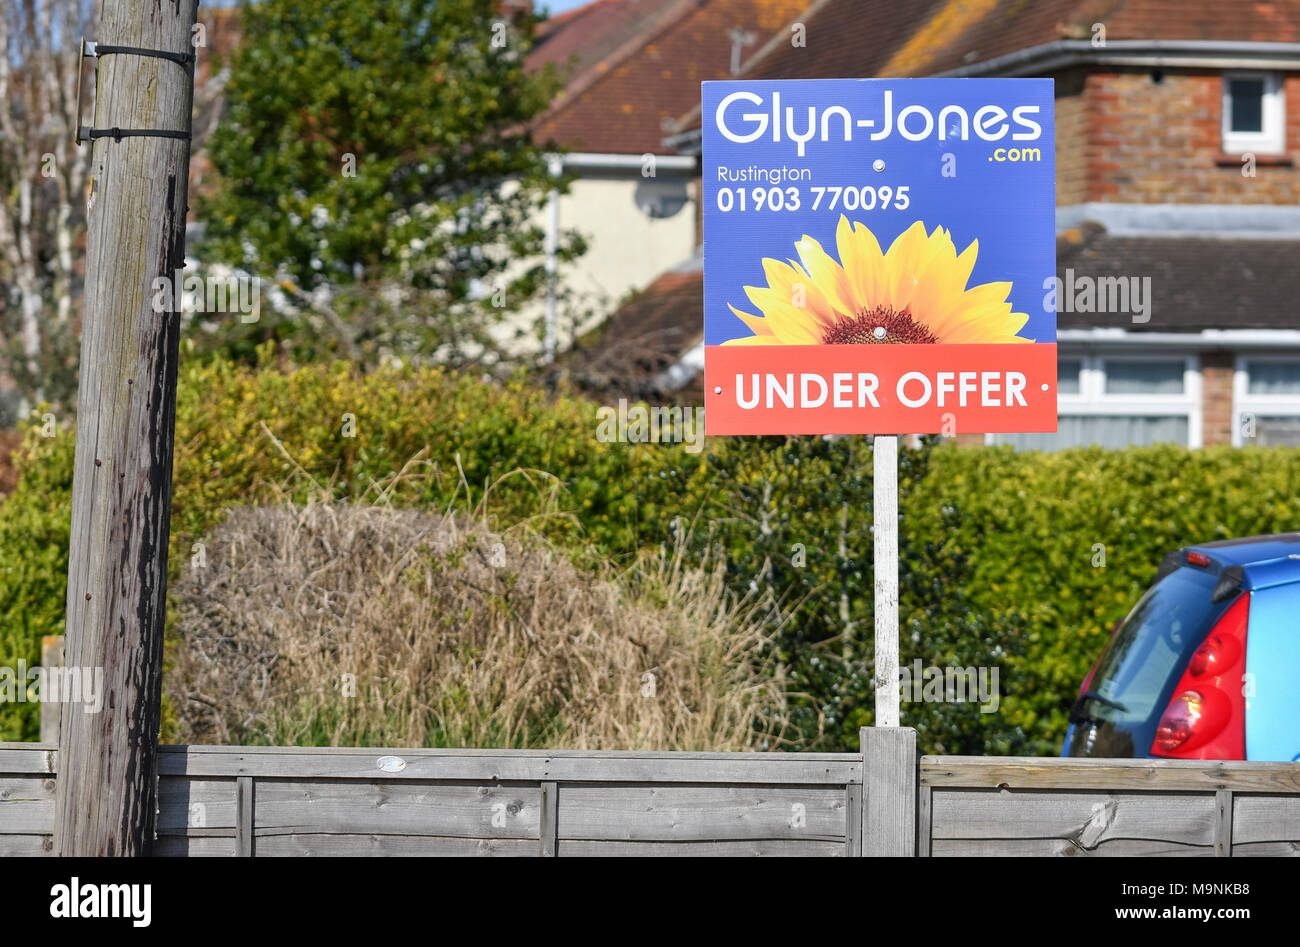 Glyn-Jones estate agents 'under offer' sign outside a house in the UK. Selling house. Selling home. - Stock Image